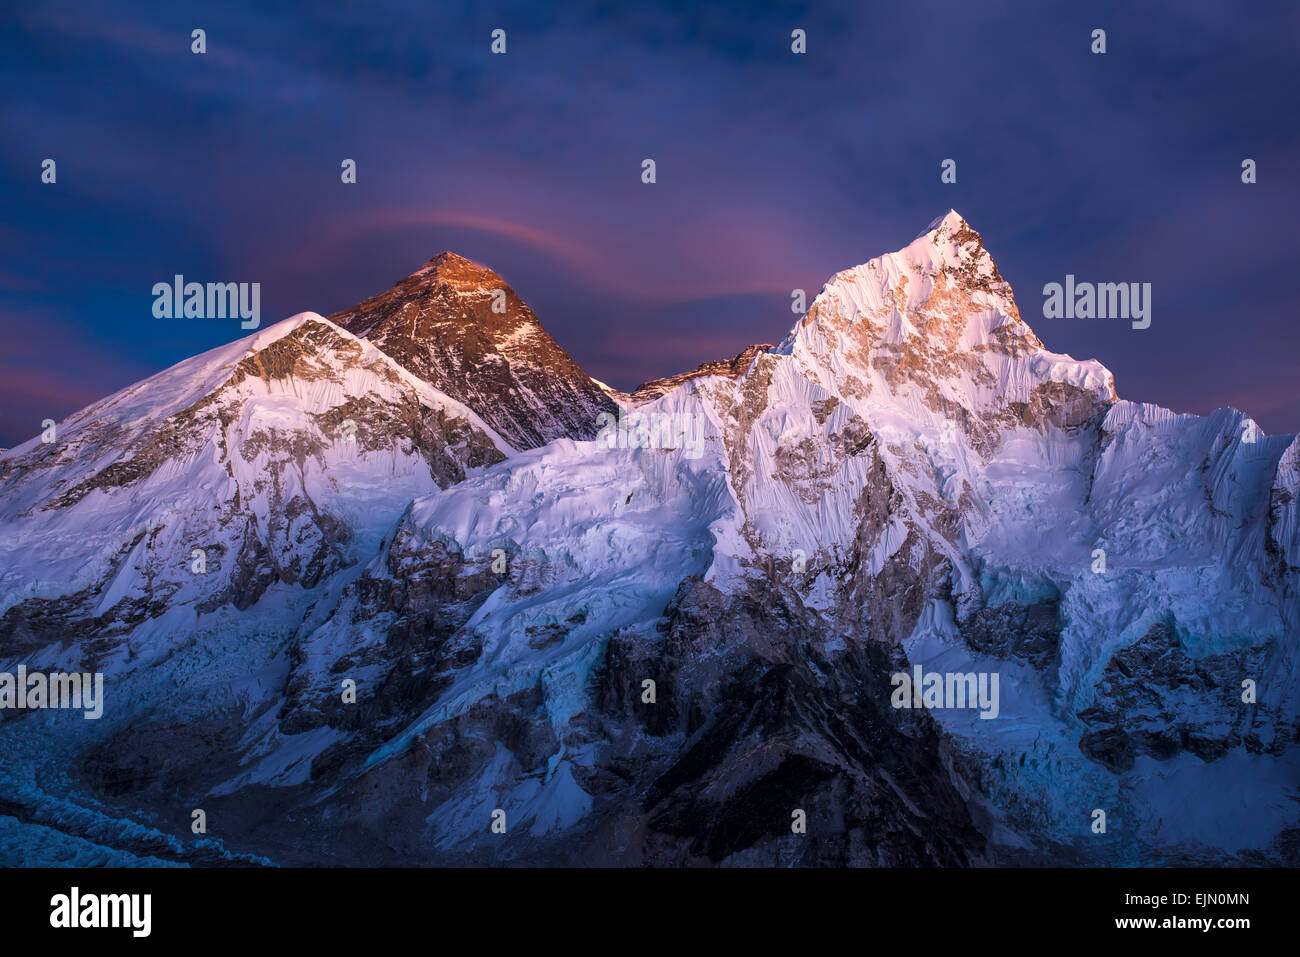 View at sundown from Kala Patthar on Mount Everest and Lhotse west flank, Chomolungma, Sagarmatha, Sagarmatha National - Stock Image